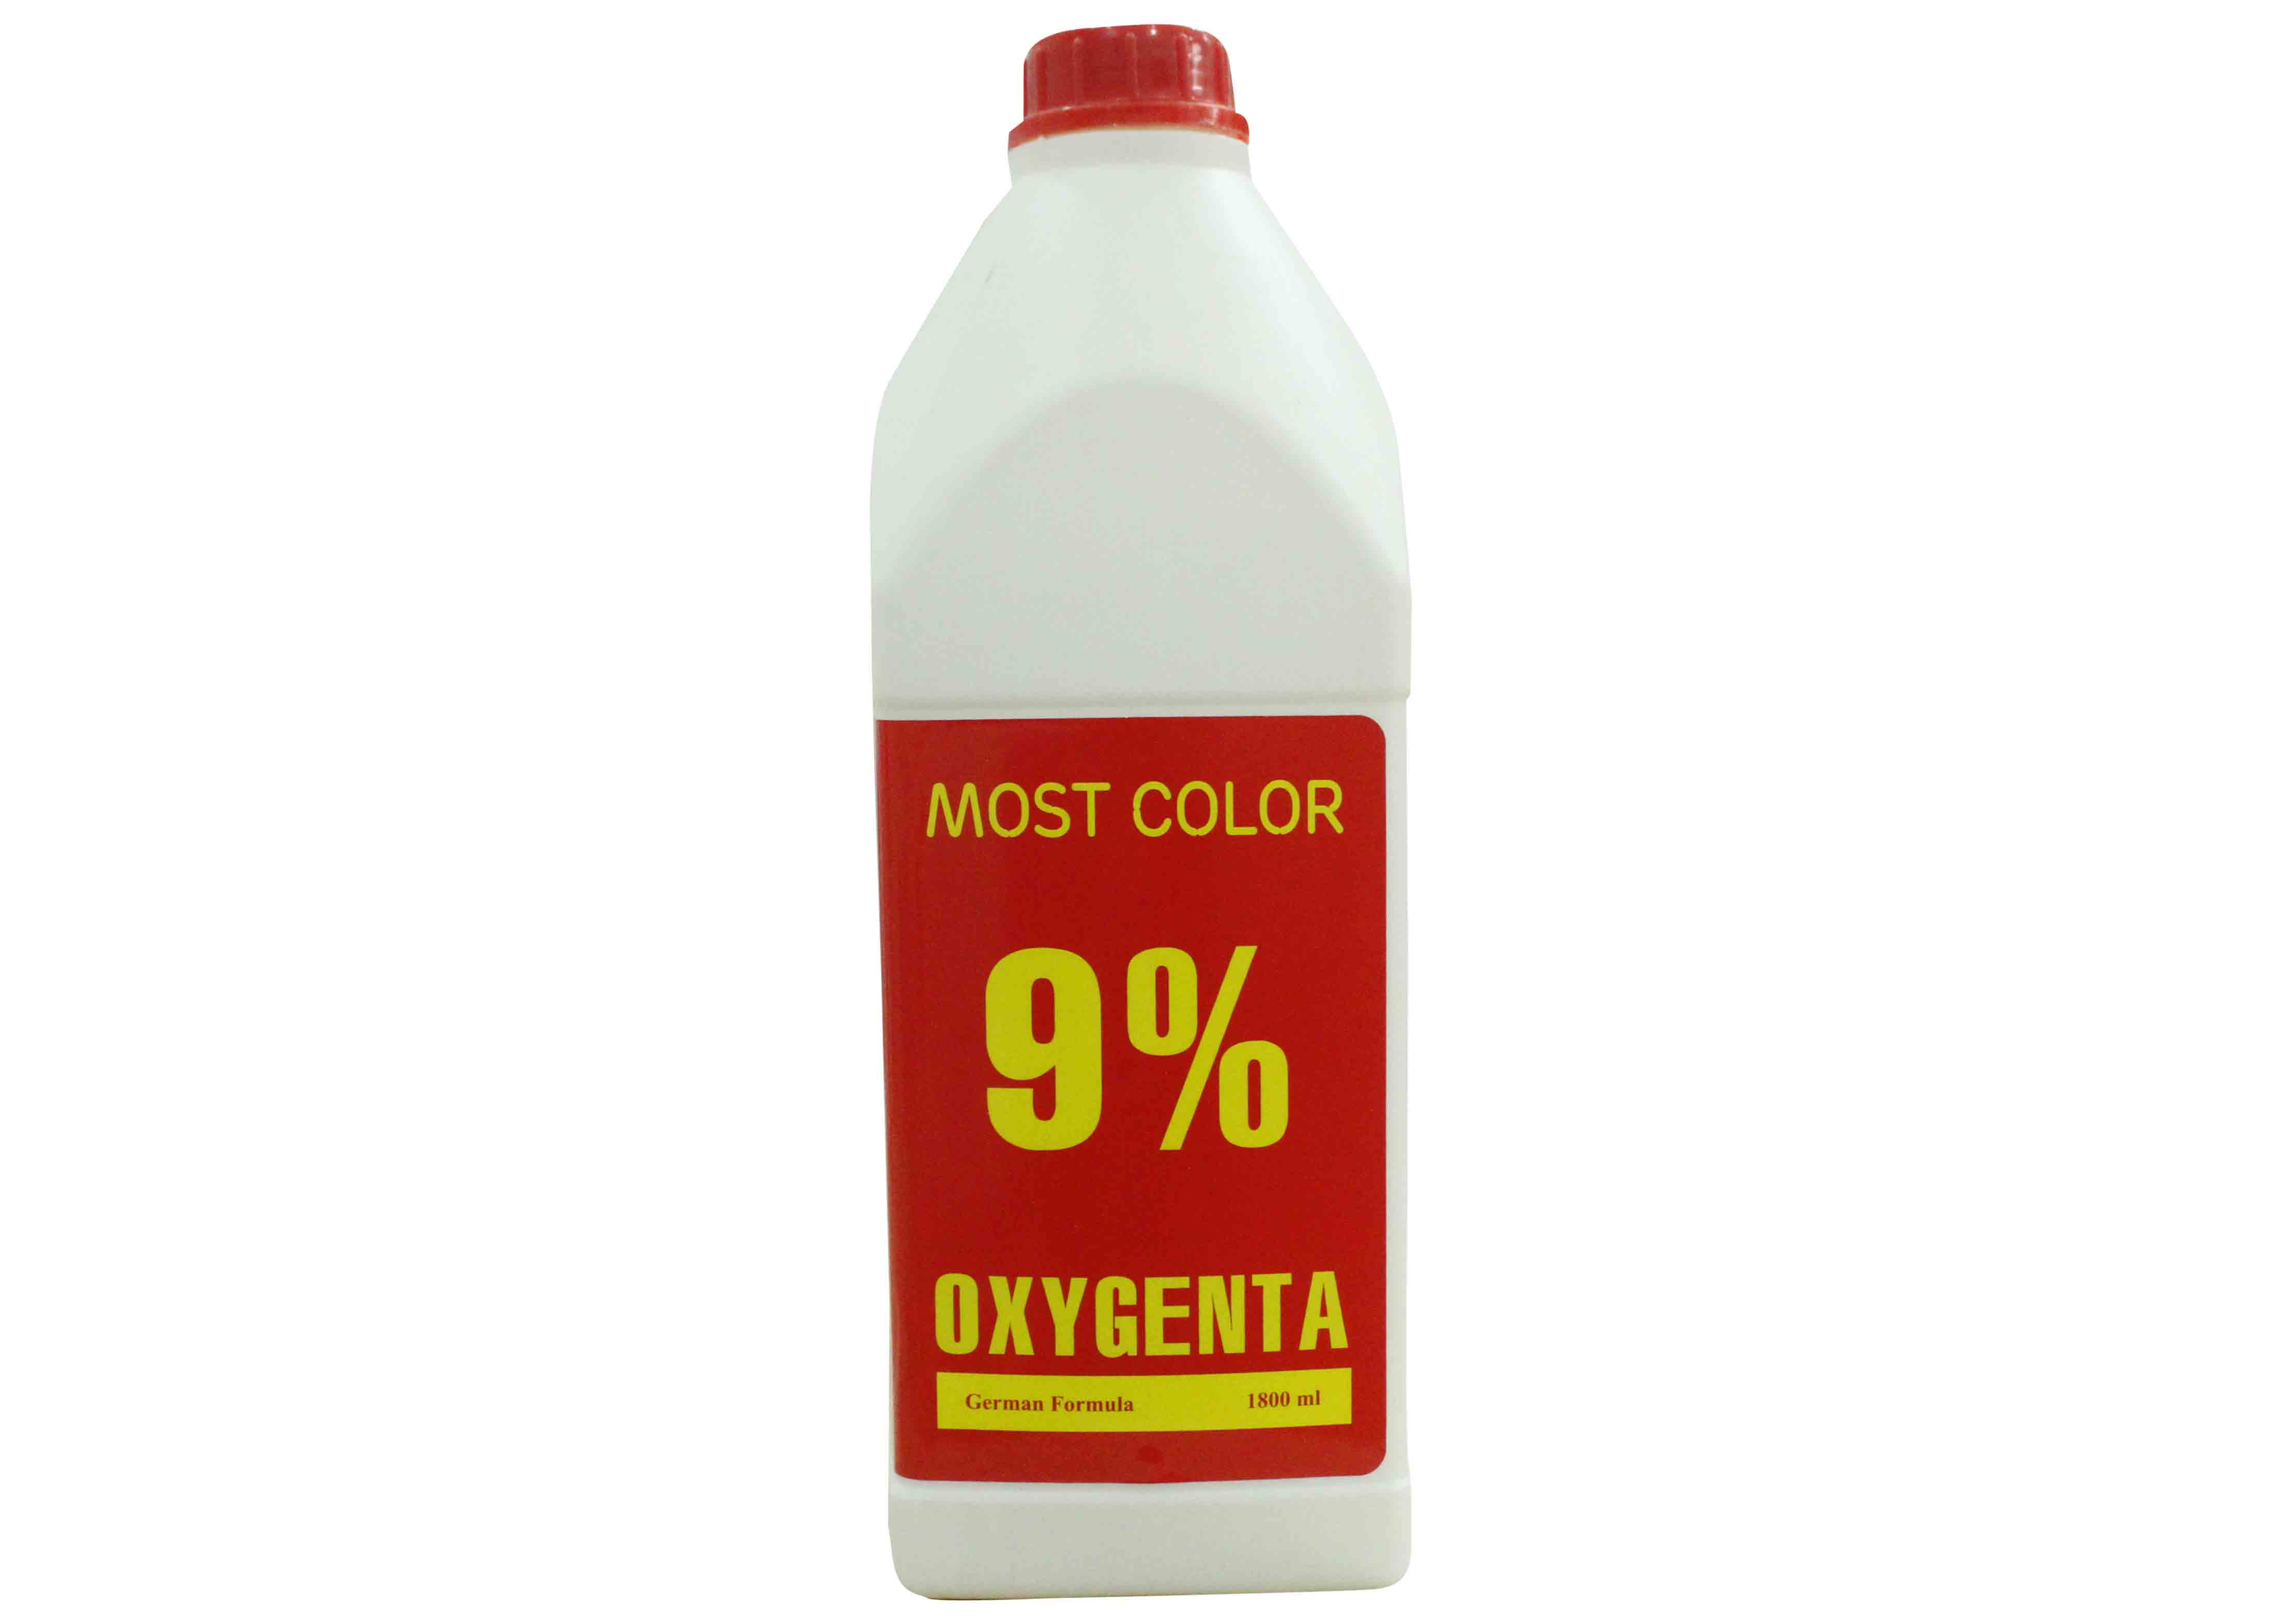 OXY MOST COLOR 9% 1800ml